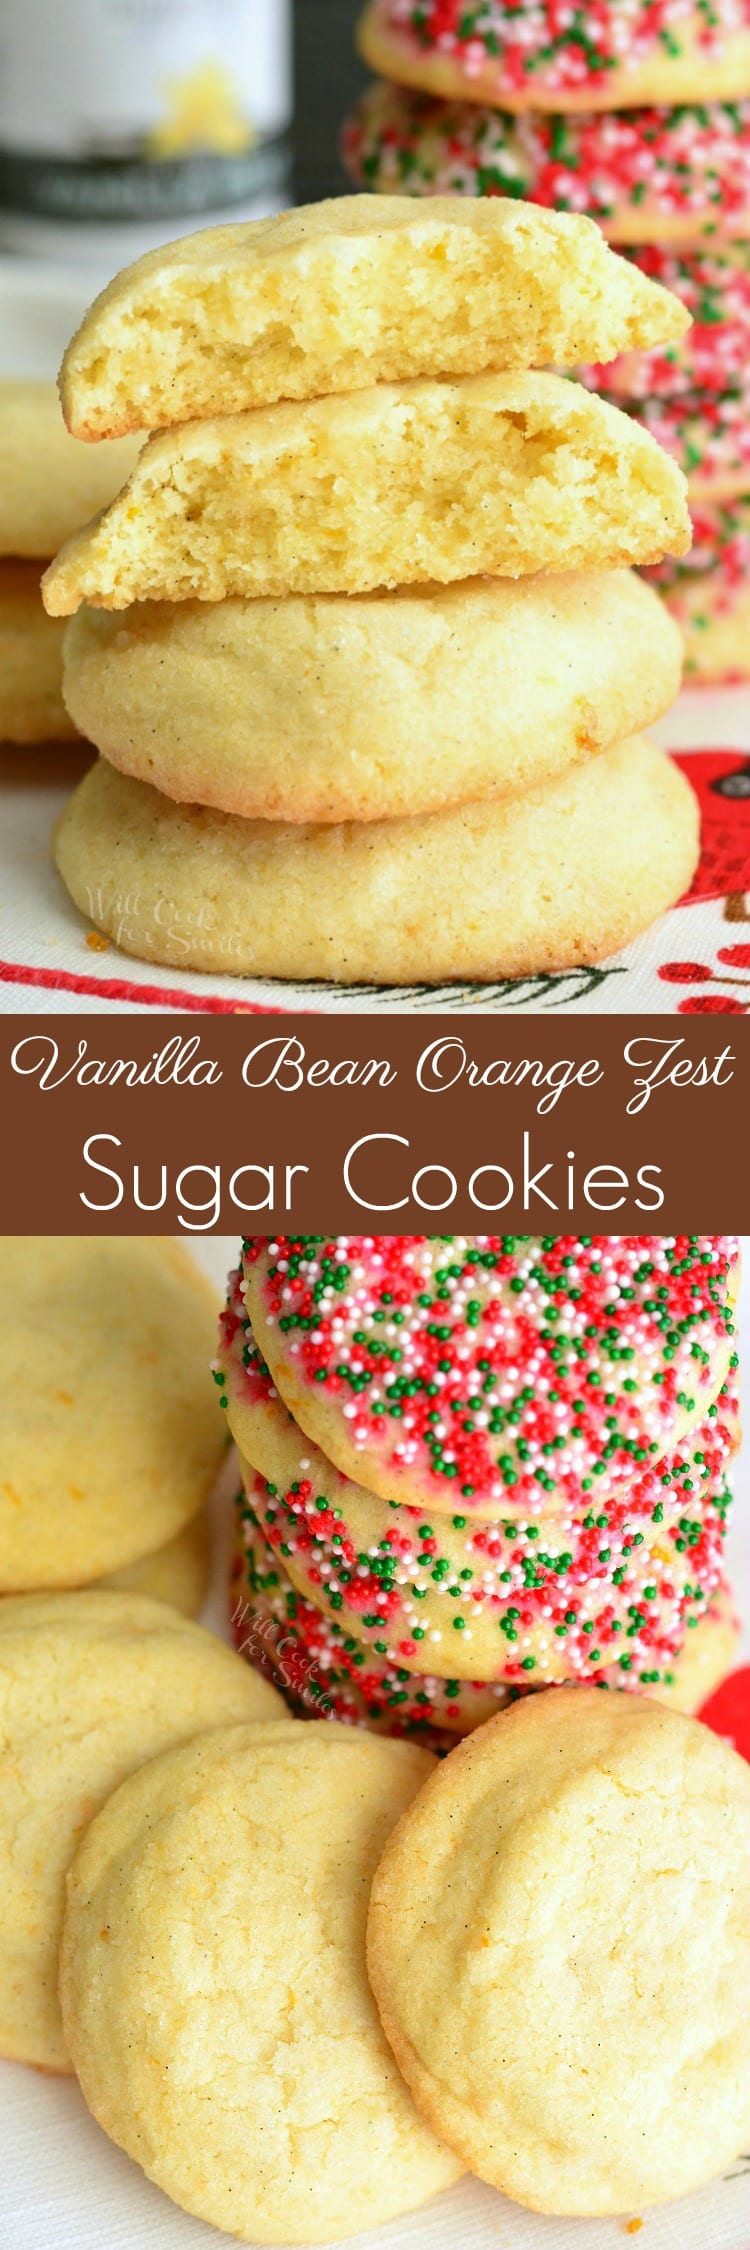 Vanilla Bean Orange Zest Sugar Cookies. These soft and chewy sugar cookies are made with vanilla bean and orange zest. Orange and vanilla flavors in these cookies is exquisite. #sugarcookies